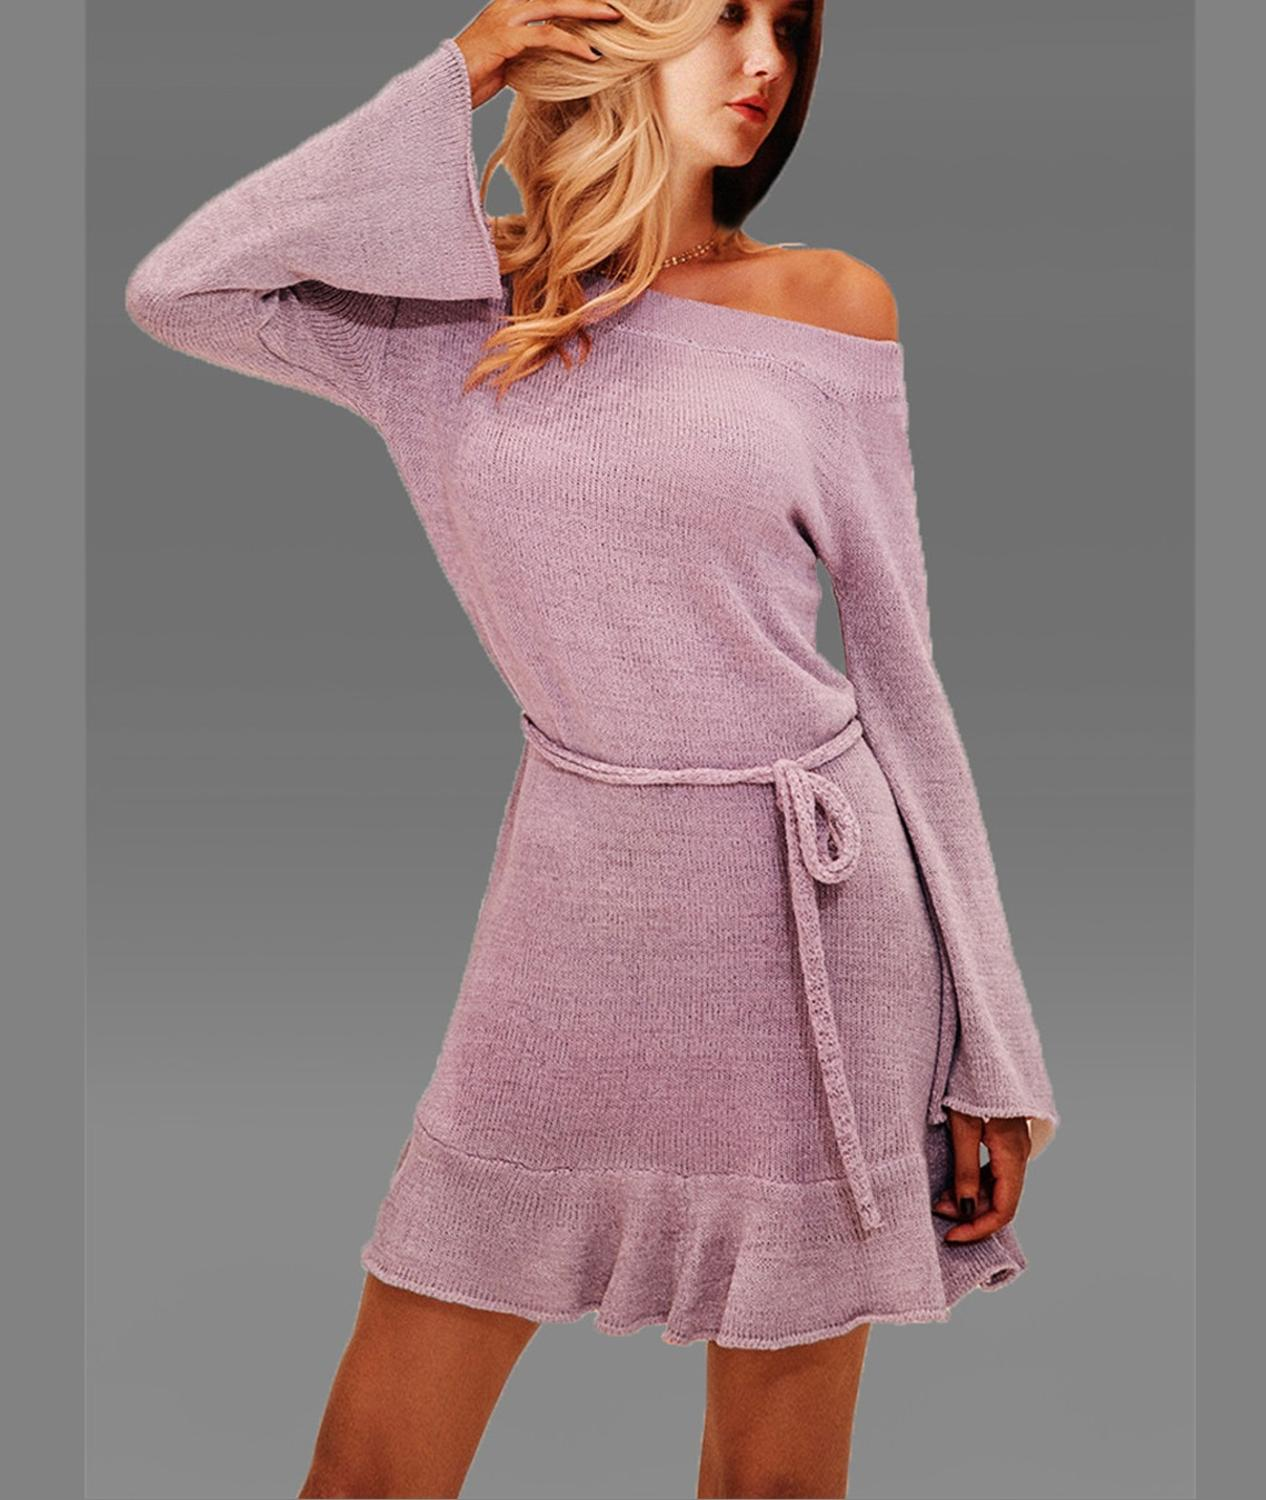 Autumn Winter Knitted Sweater Dress Winter Clothes Women Off Shoulder Midi Sexy Pink Dress Plus Size Sleeve Party Long Dress in Pullovers from Women 39 s Clothing